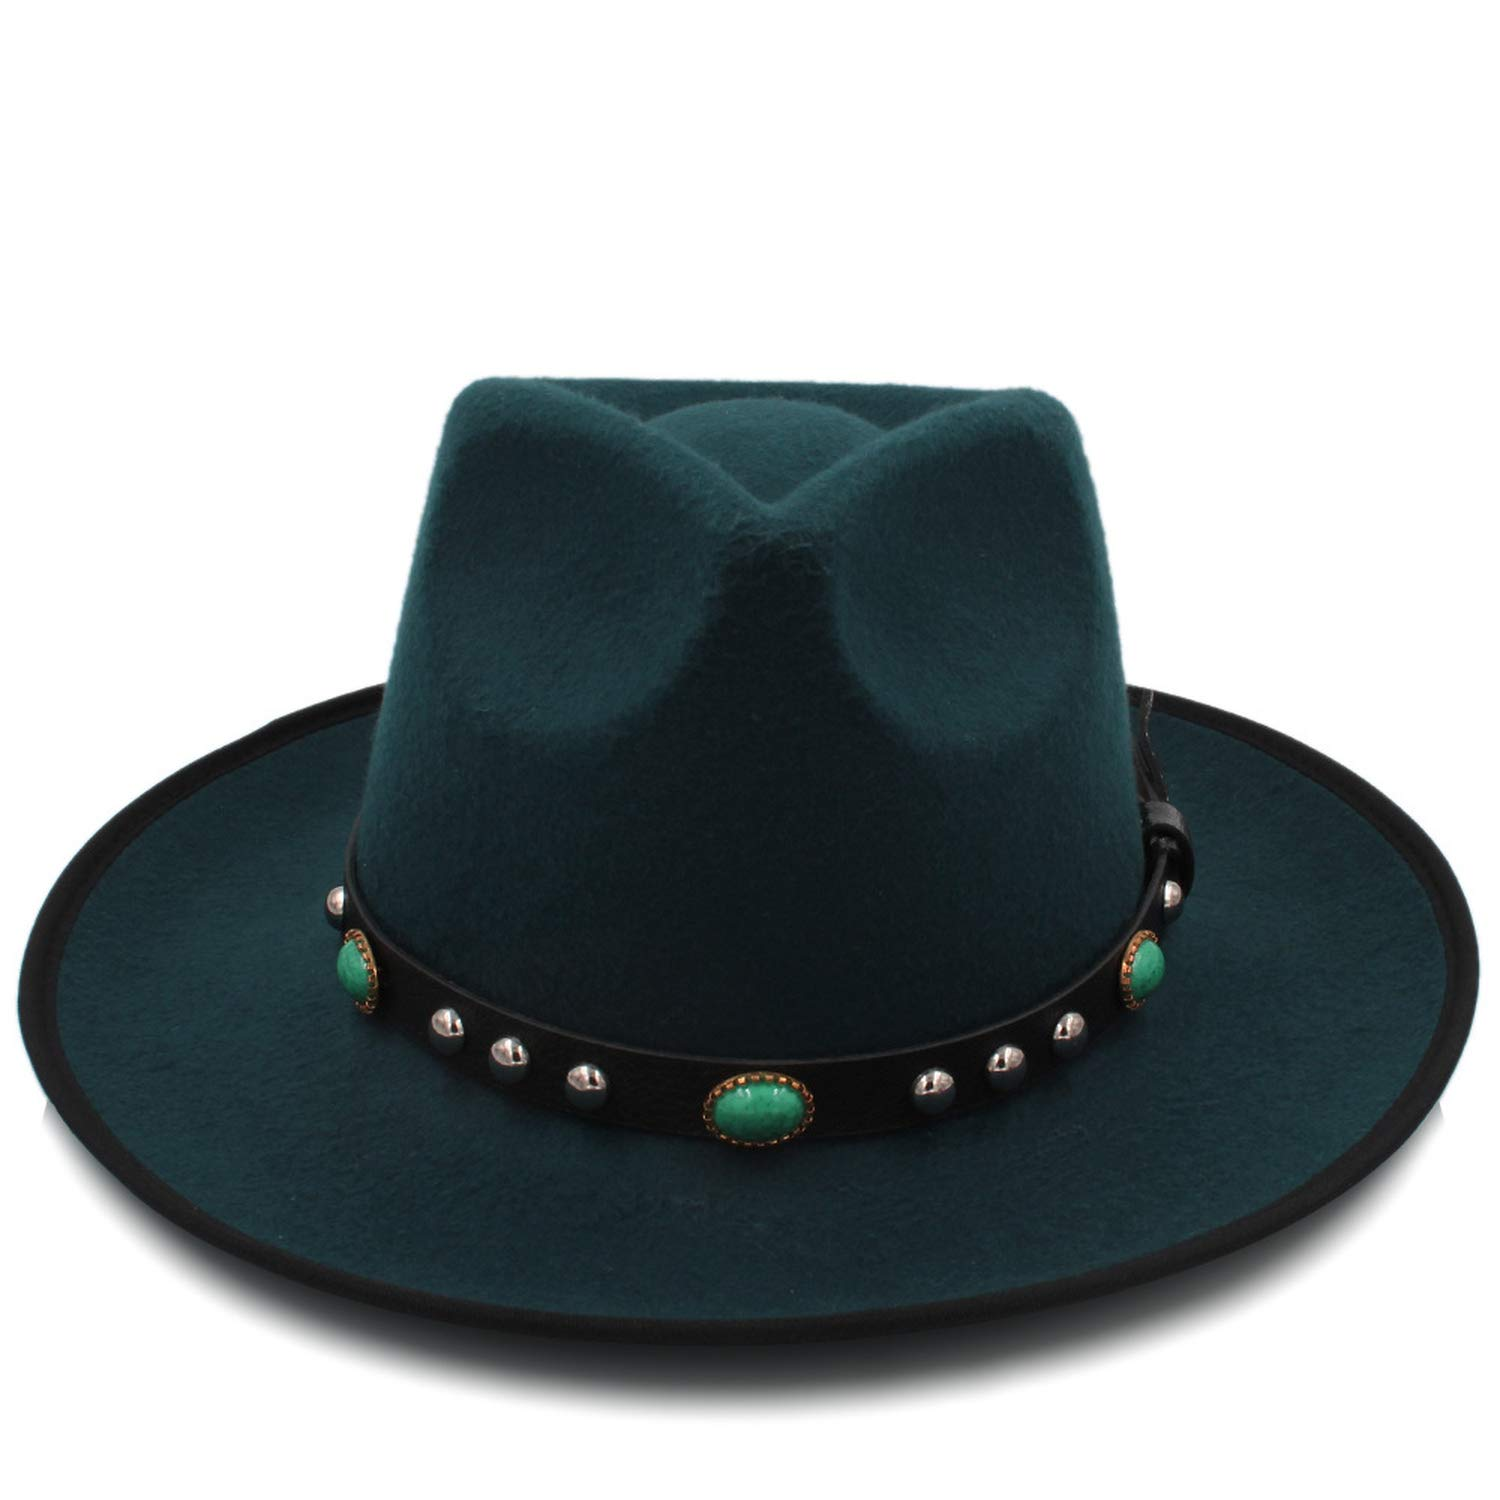 261cd4911fc3e Fashion Women Felt Chapeau Fedora Hat with Wide Brim Jazz Hat Lady Queen  Sombrero Fascinator Dad Sombrero Hat at Amazon Women s Clothing store